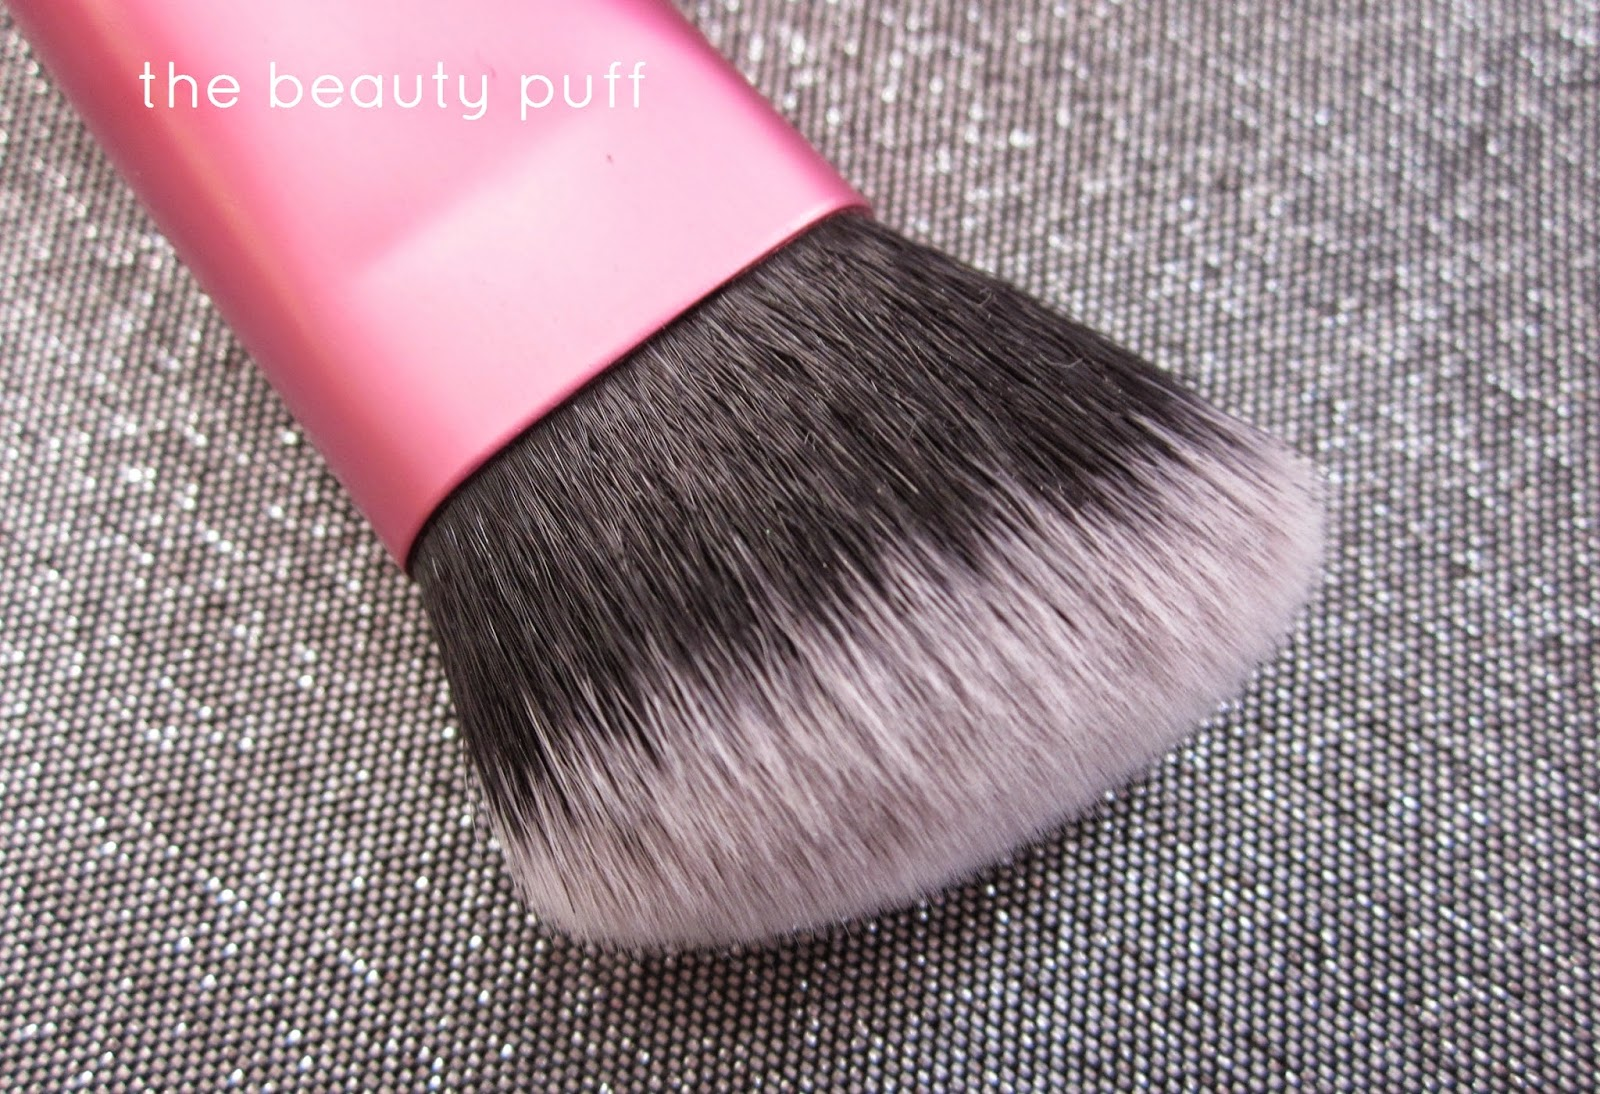 Real Techniques Sculpting Brush - The Beauty Puff